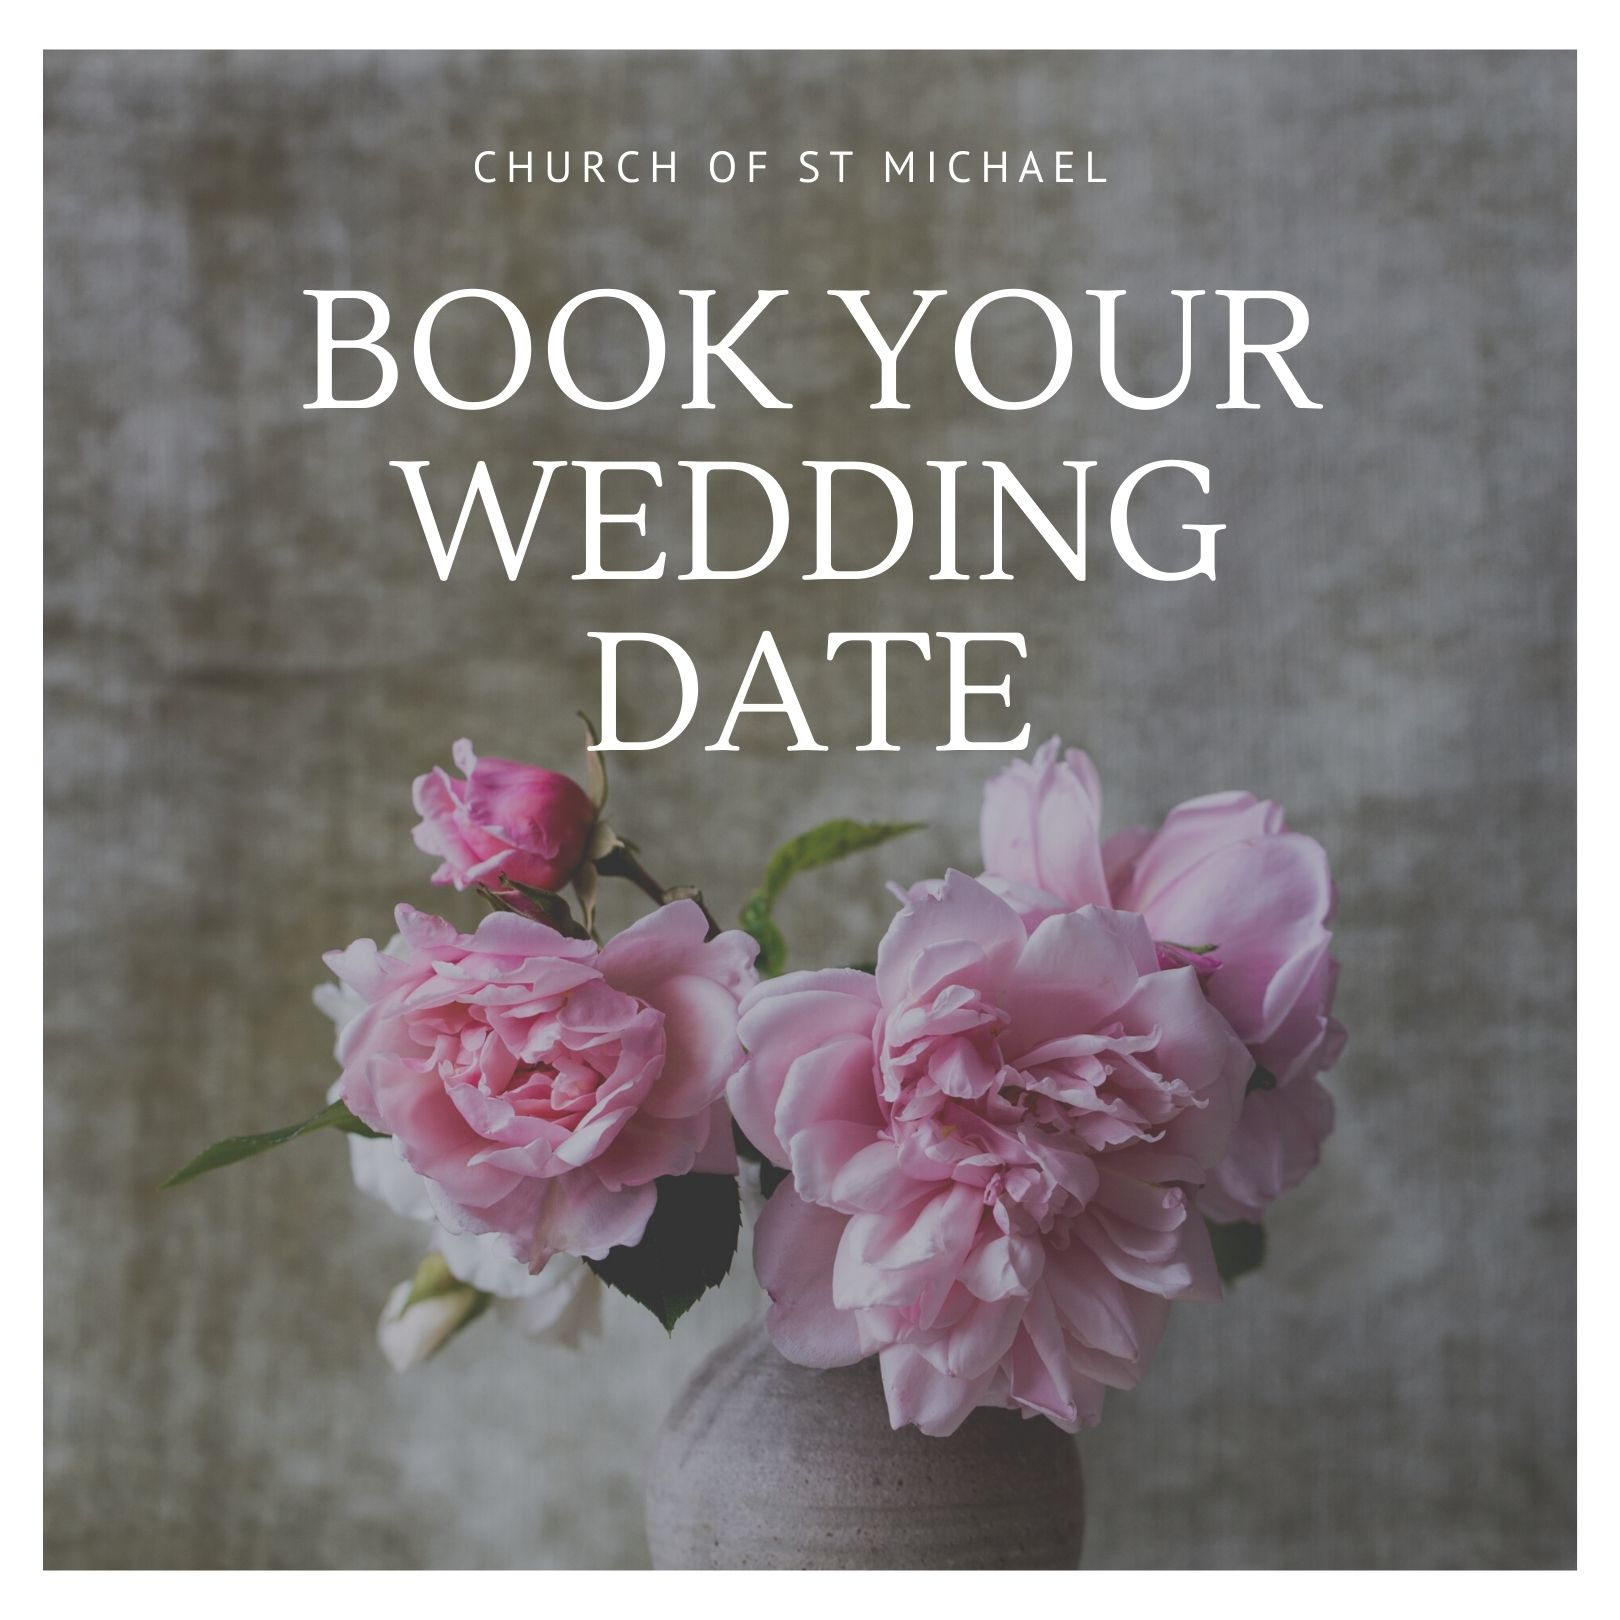 Book your wedding date